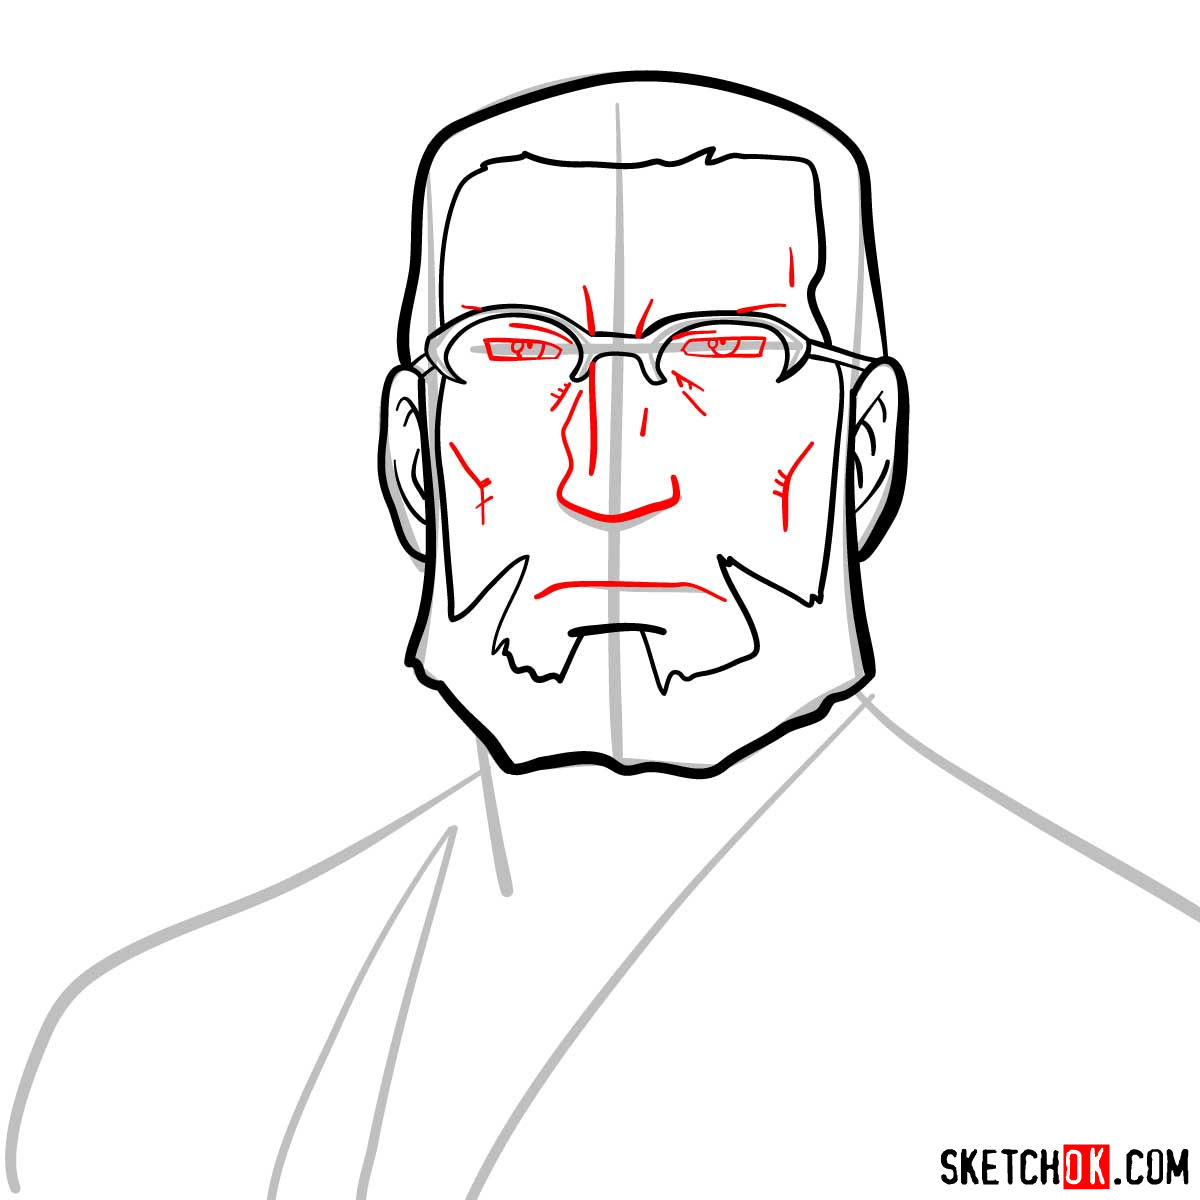 How to draw Van Hohenheim from Fullmetal Alchemist anime - step 06